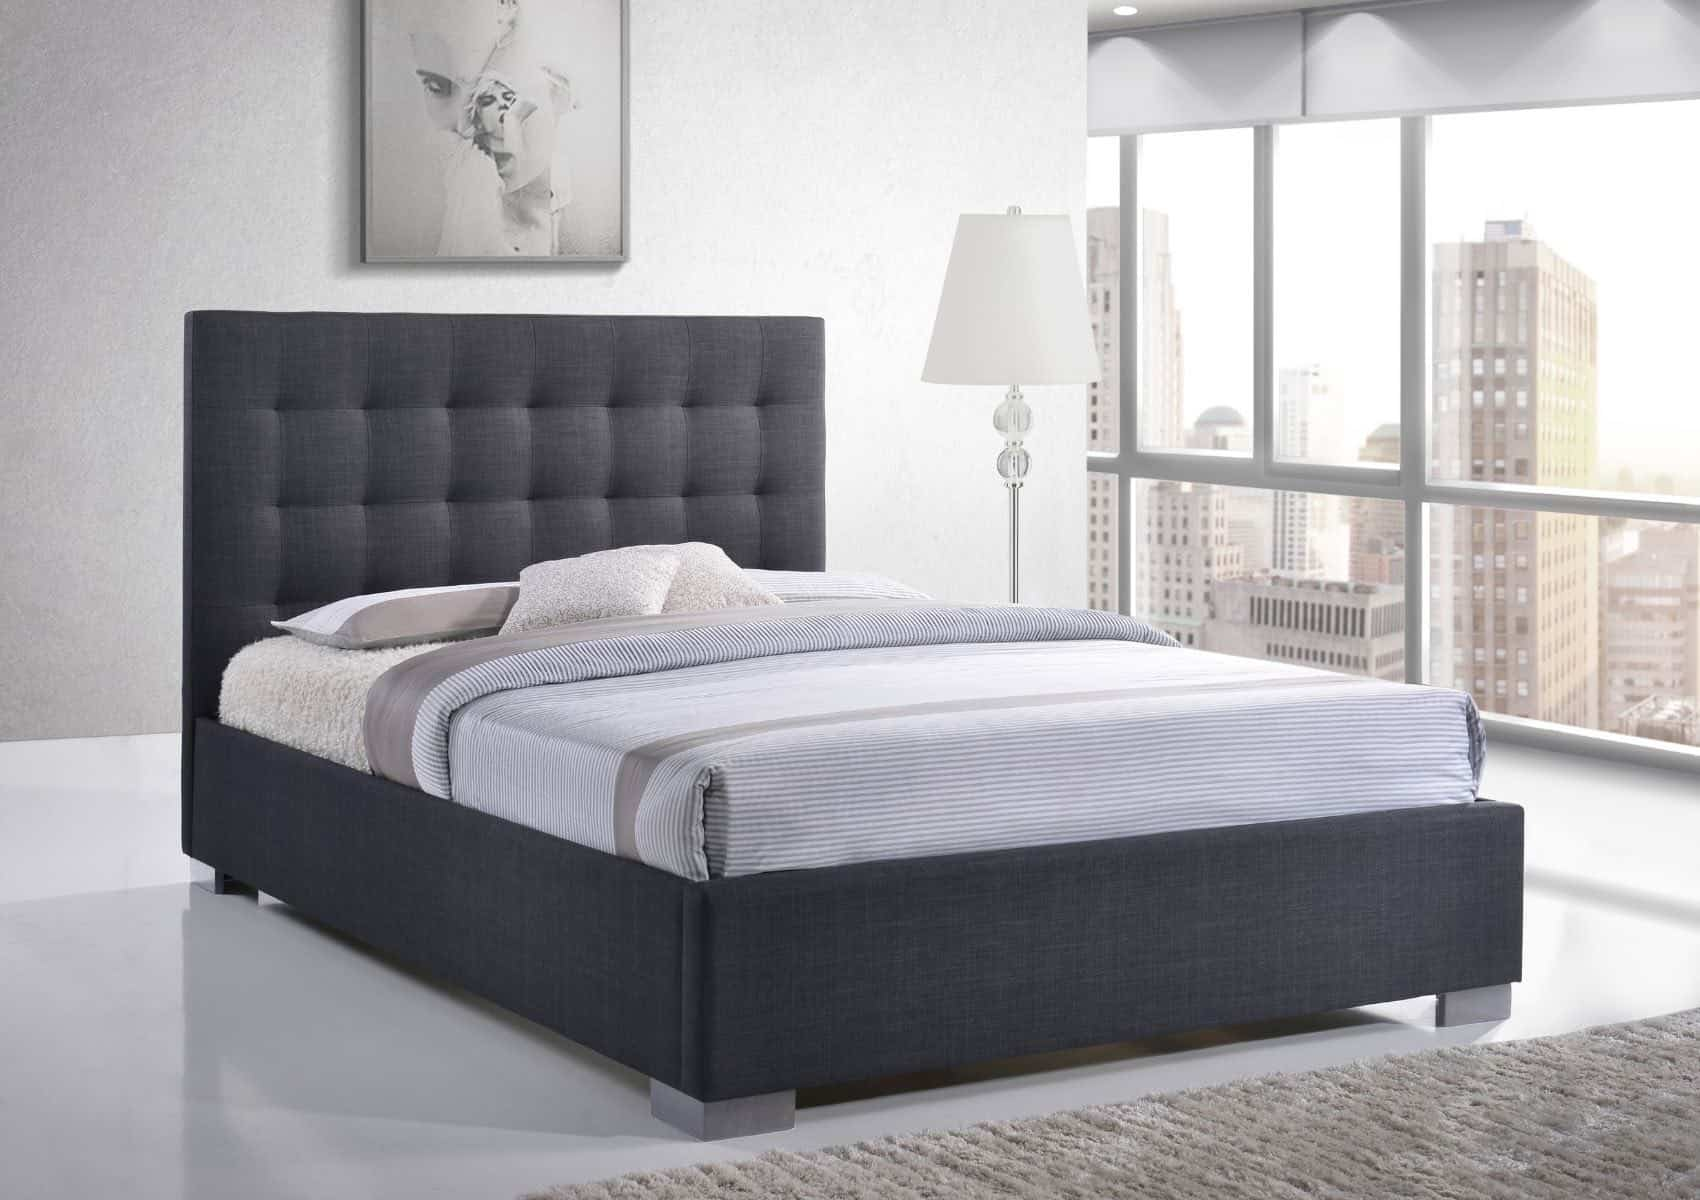 Nevada Bed Frame Grey Upholstered Beds Number One Beds